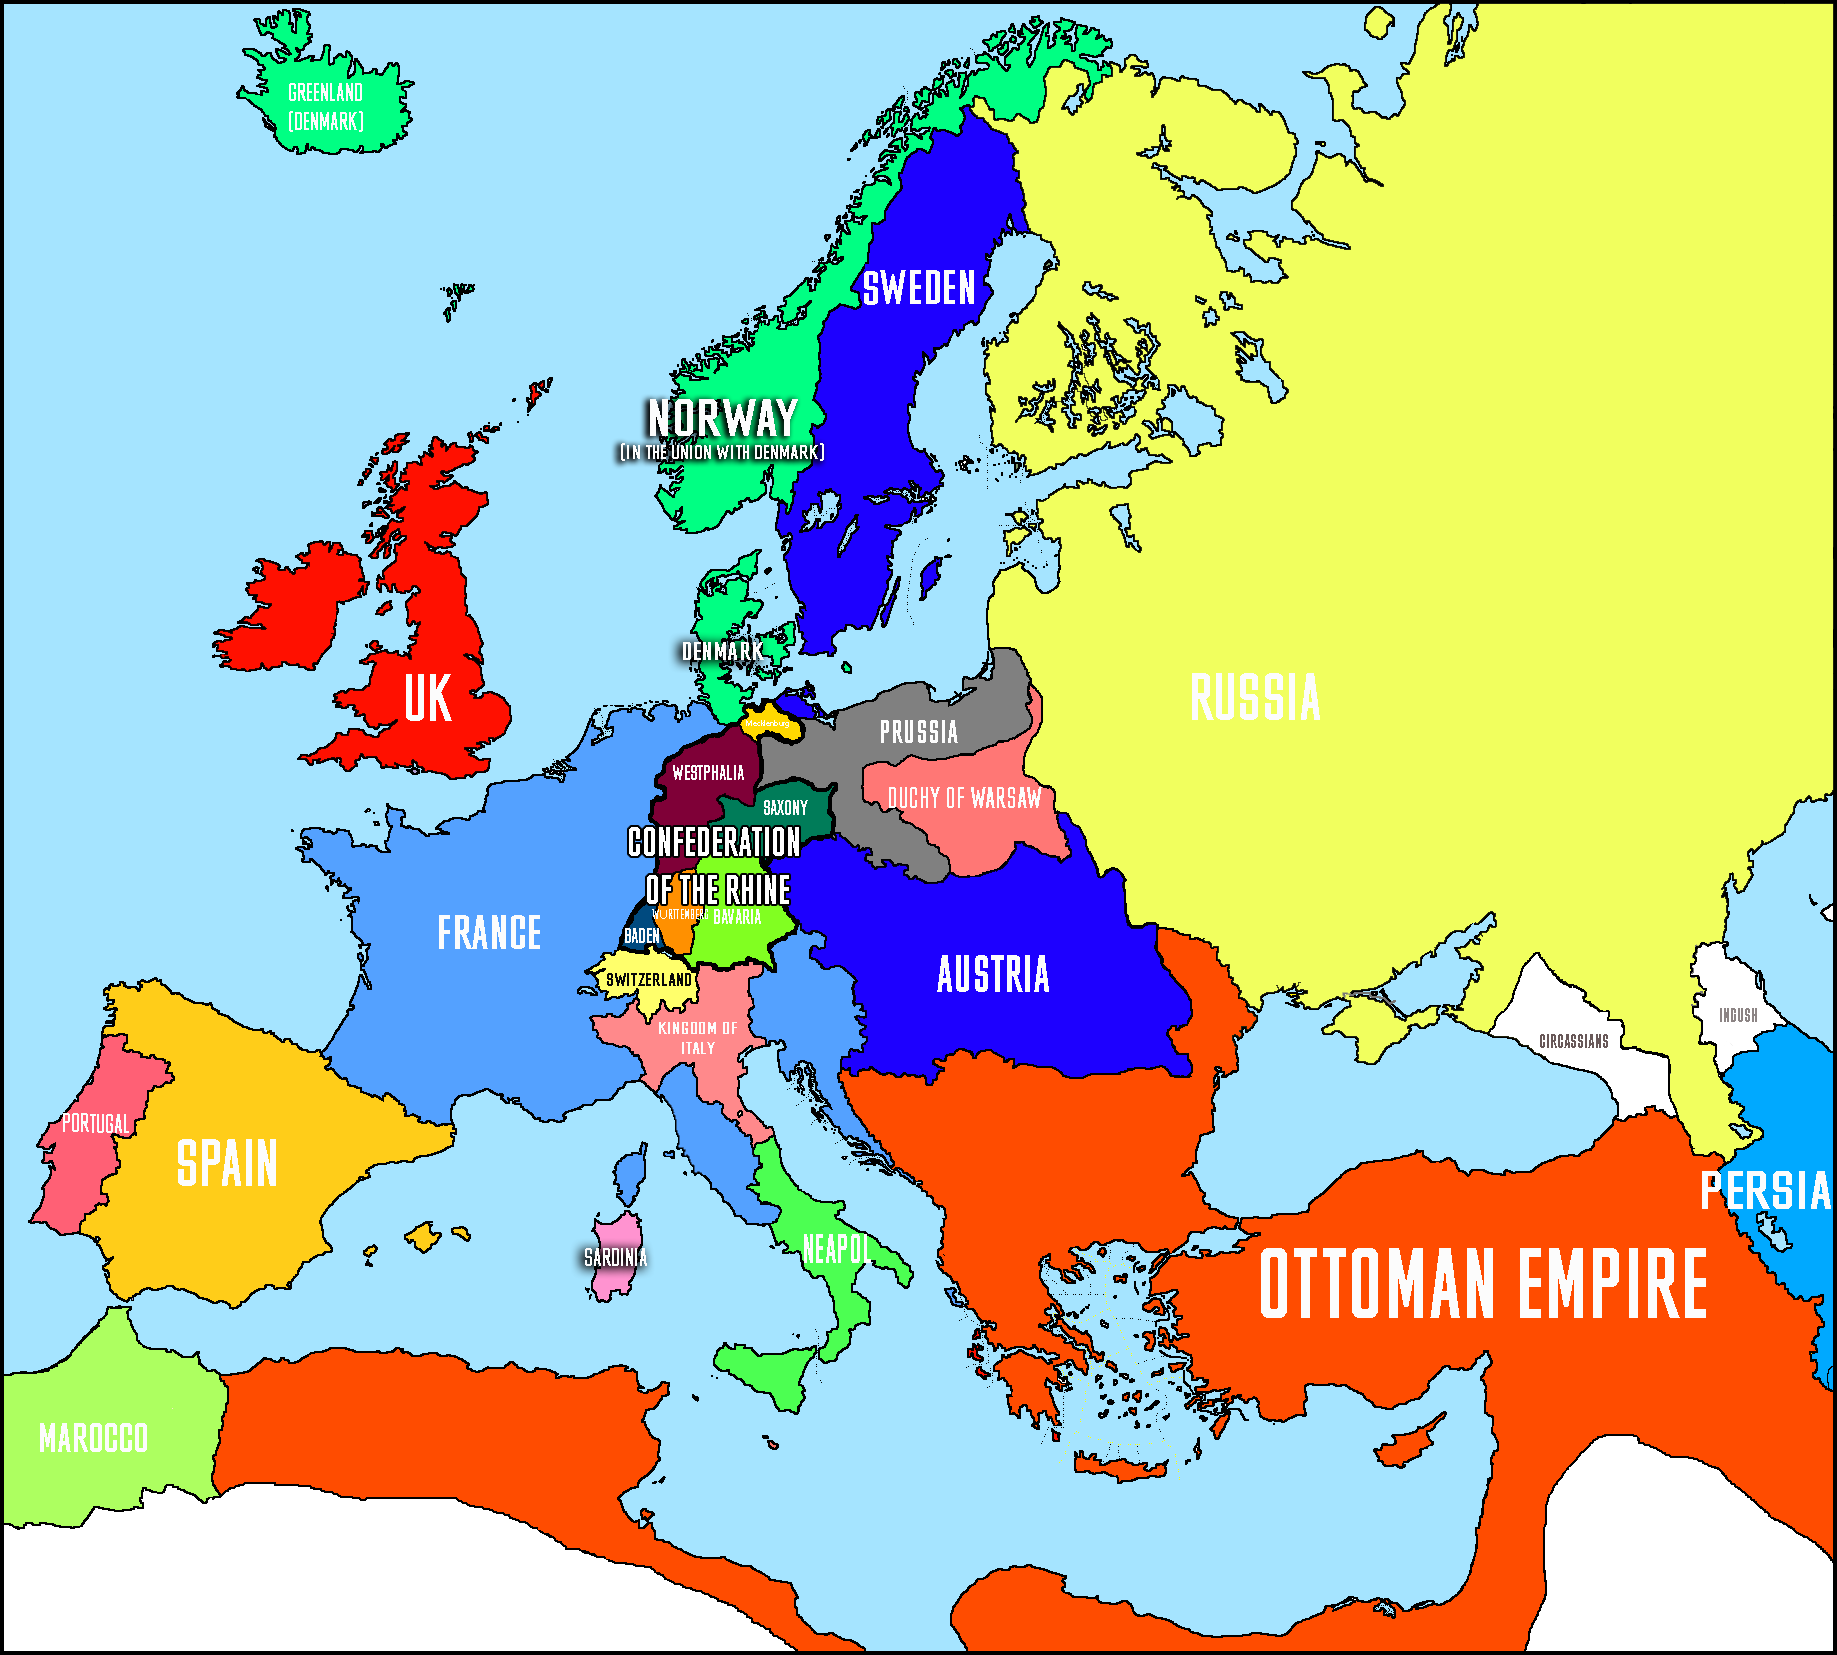 Map Of Europe 1812 Political map of Europe in 1812 by kvlchk on DeviantArt